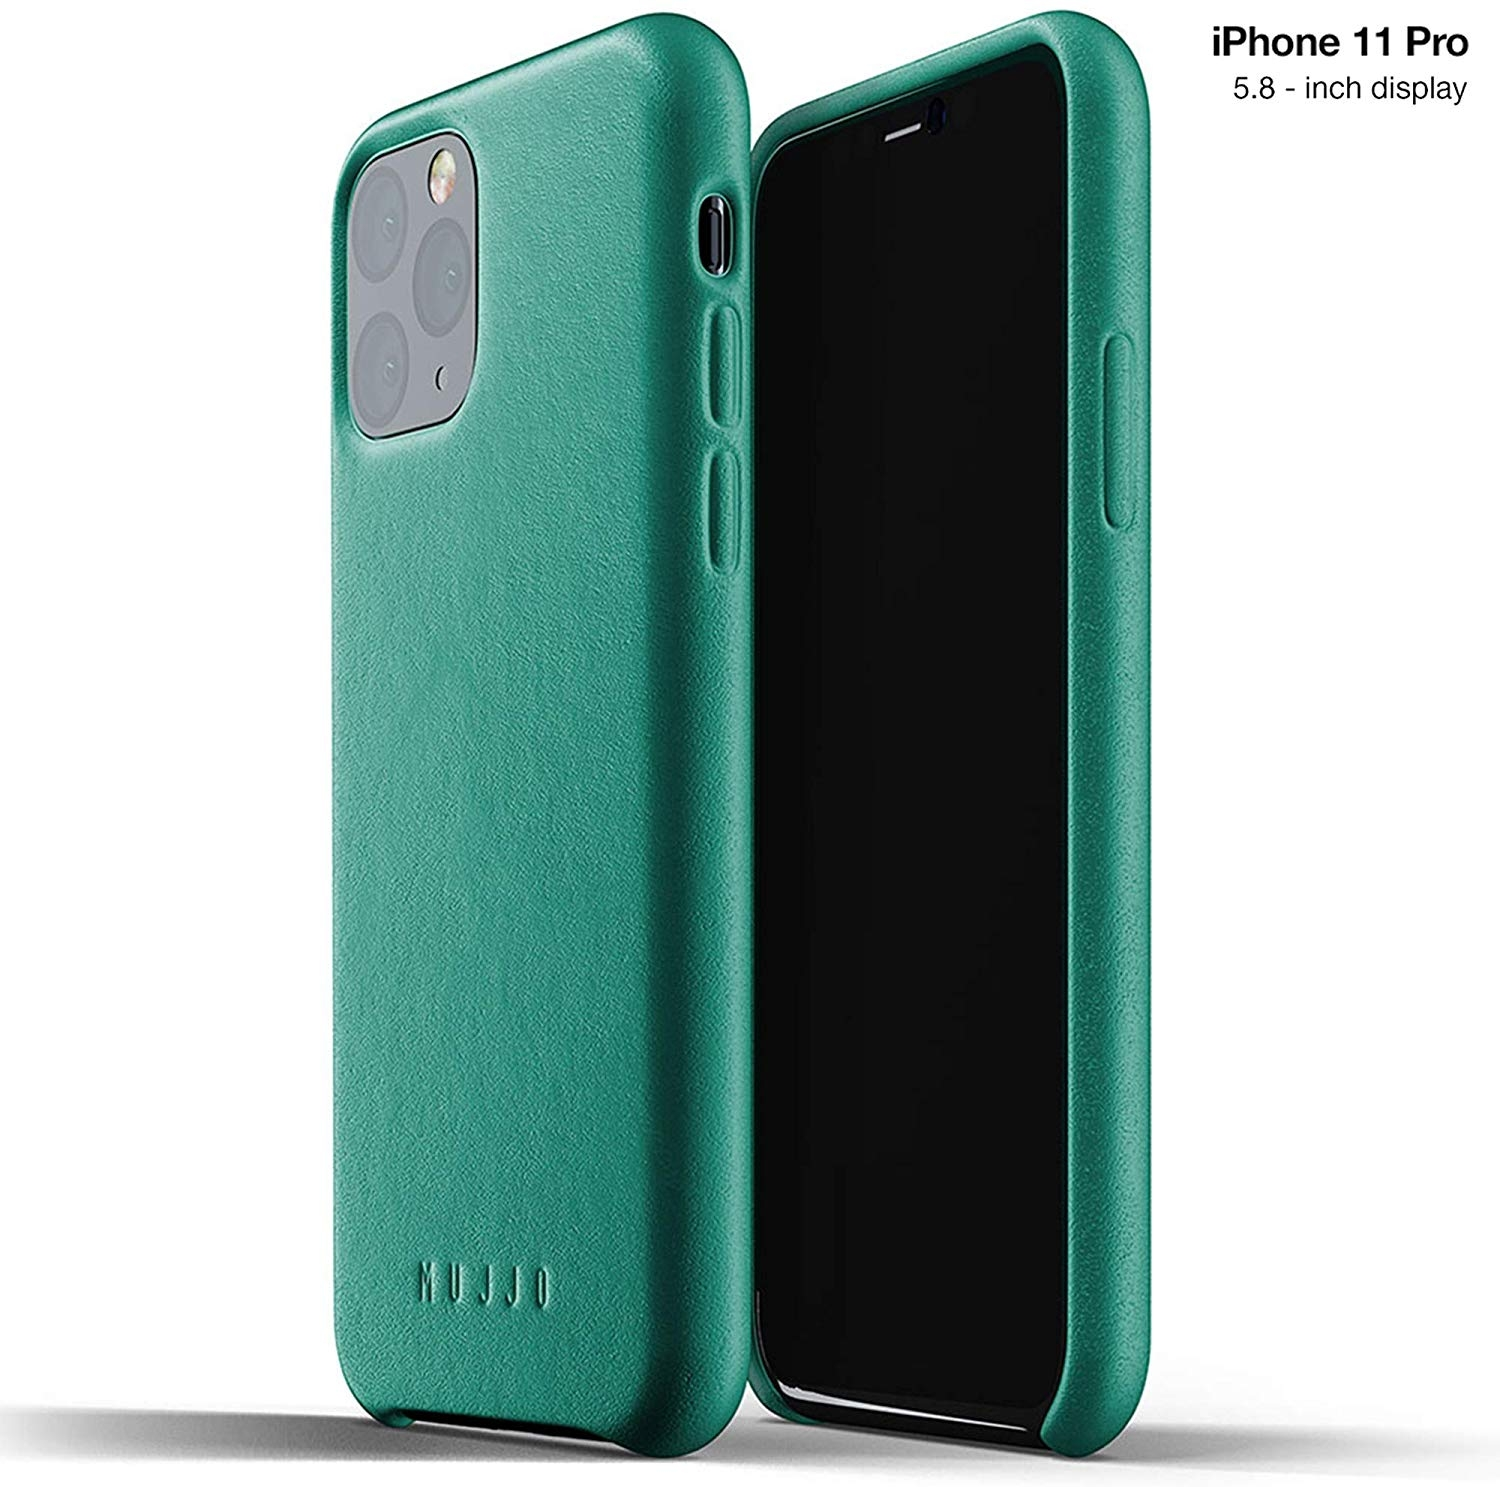 MUJJO Full Leather Case - Δερμάτινη Θήκη iPhone 11 Pro - Alpine Green (MUJJO-CL-001-GR)